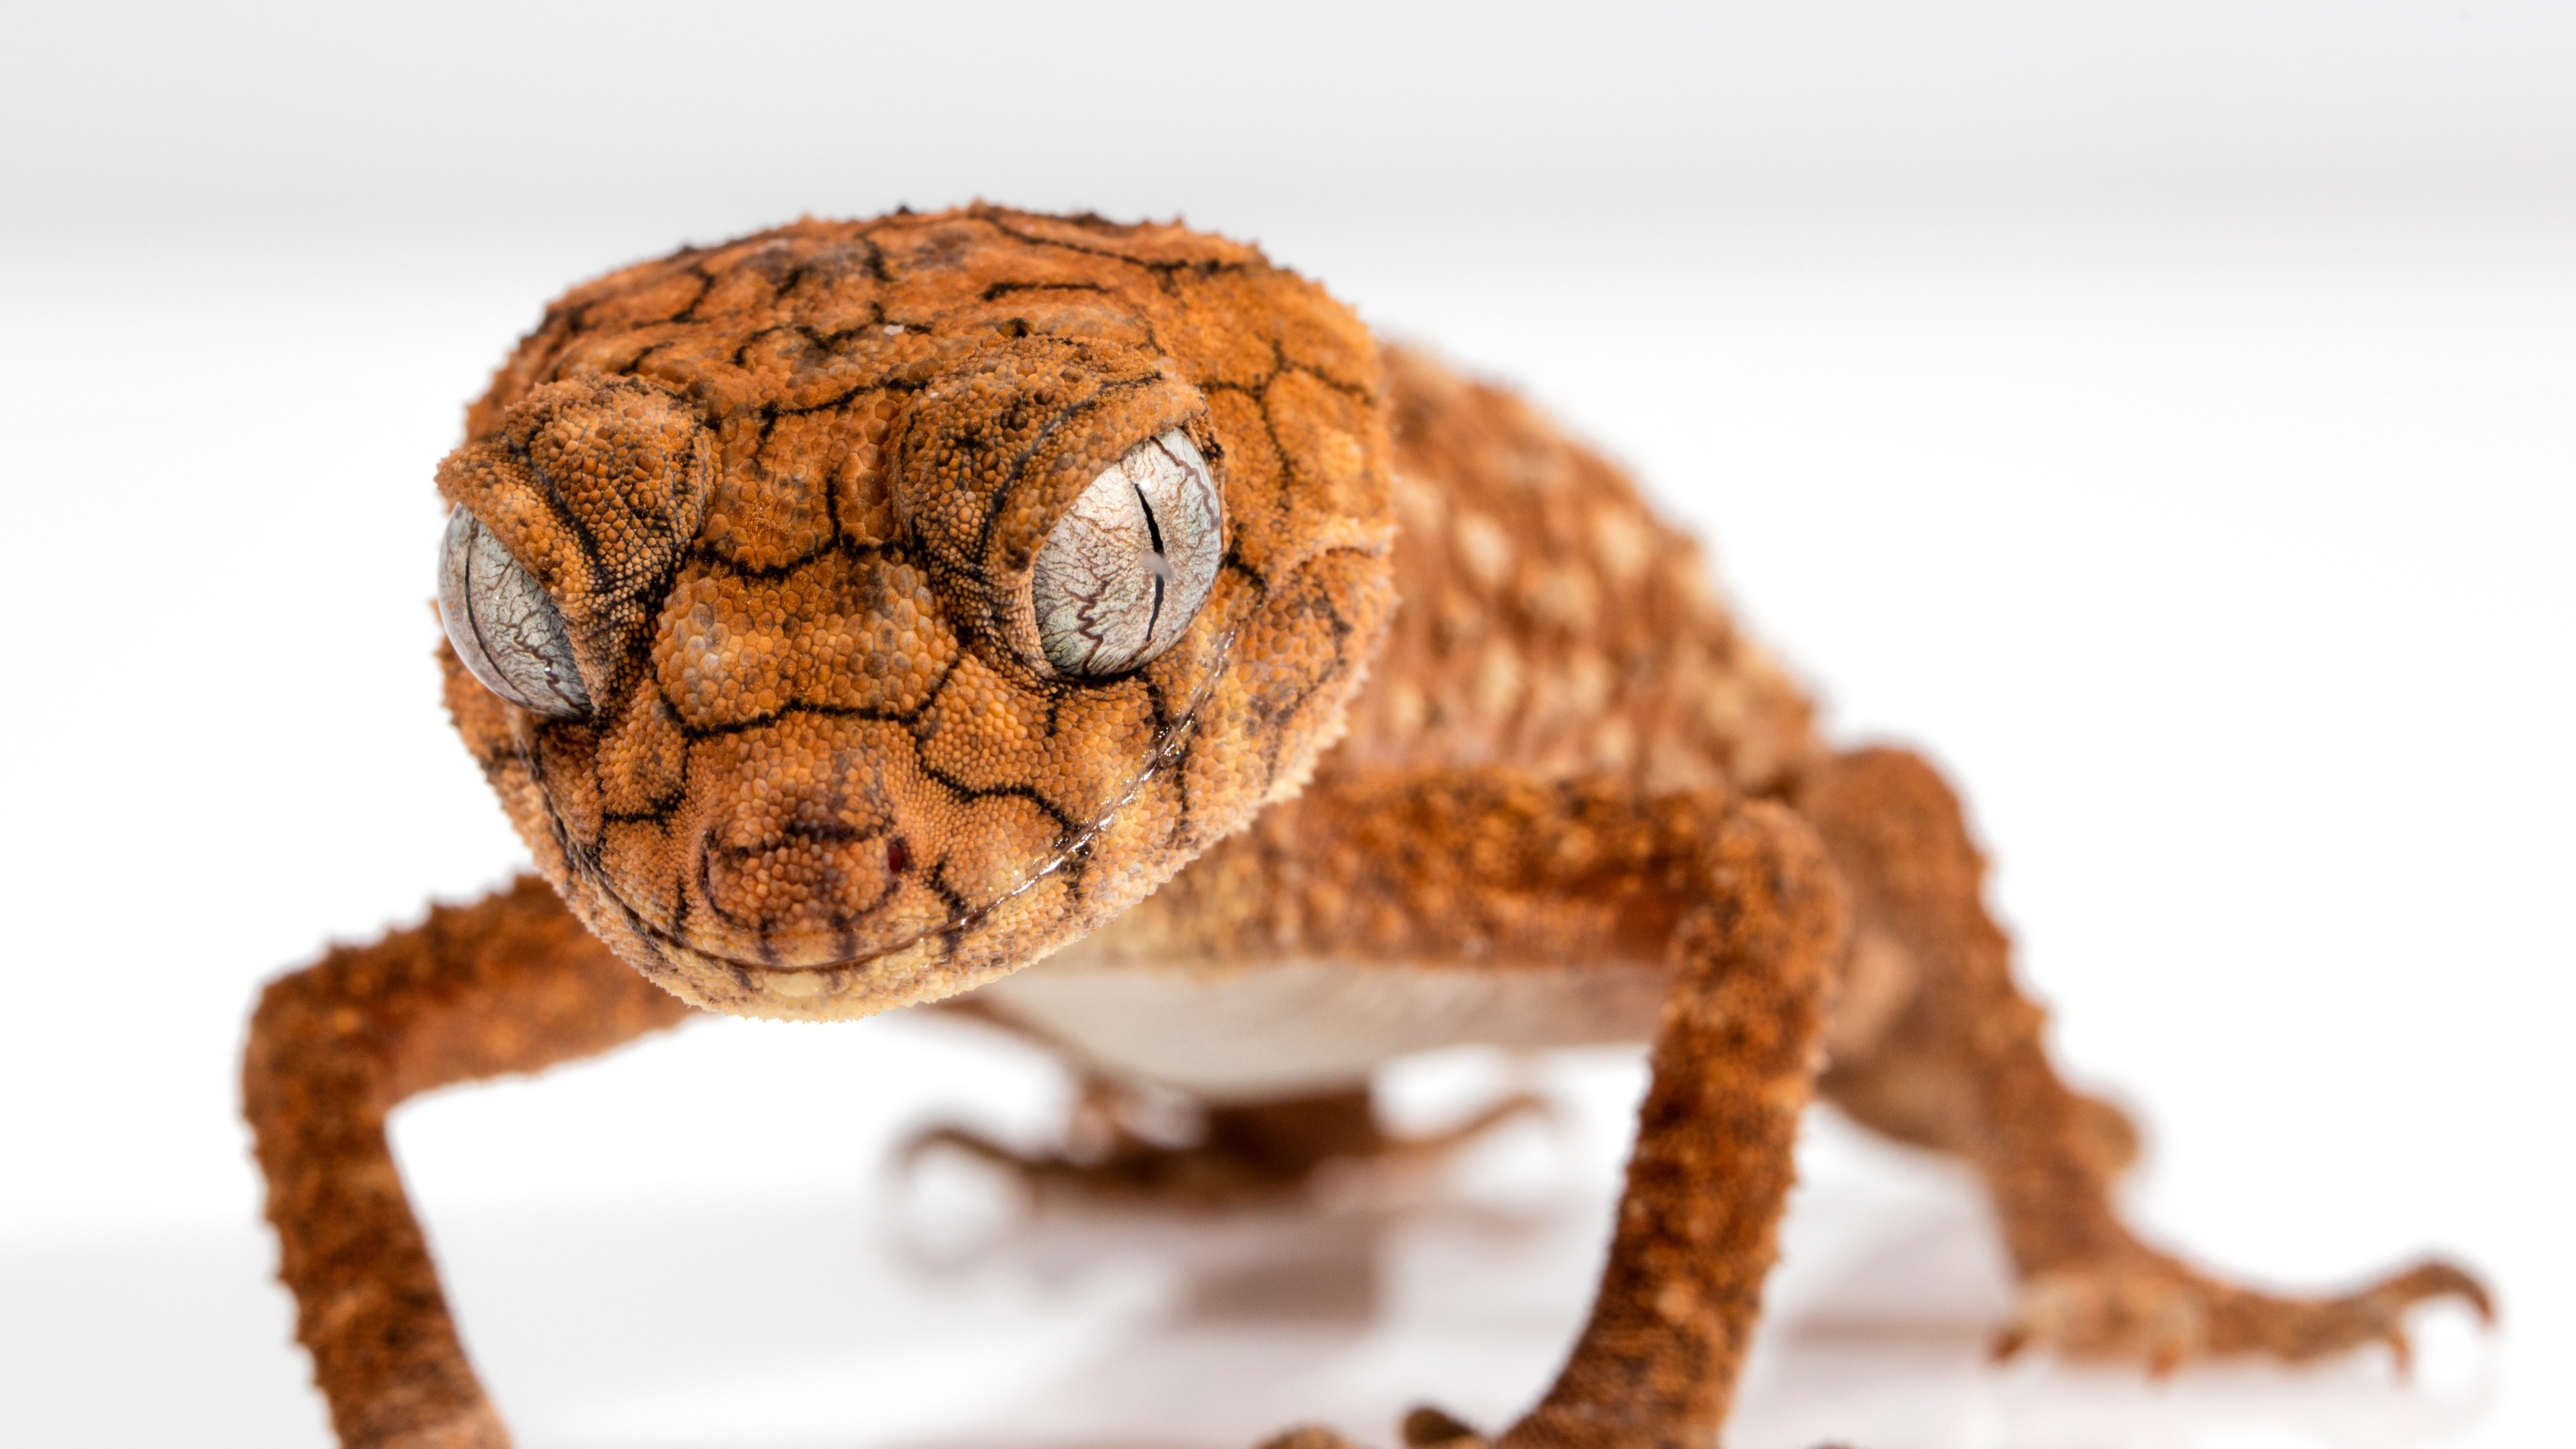 Desktop Wallpaper Quotes Pinterest Wallpaper Gecko Caledonian Crested Gecko Reptile Lizard